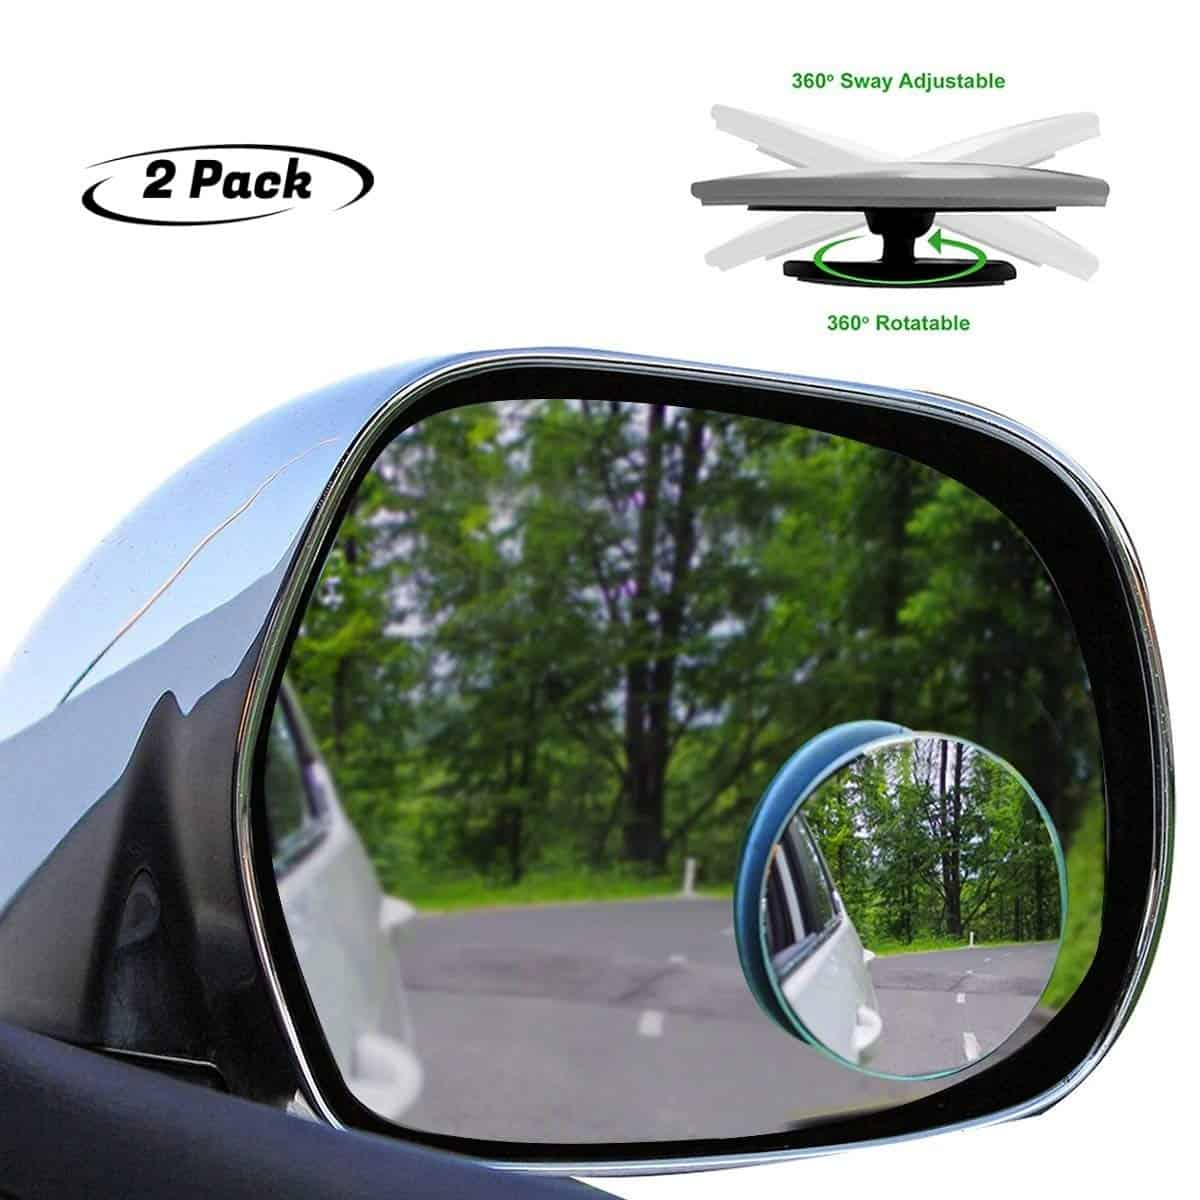 Best Blind Spot Mirror of 2019: Reviews and Buying Guide